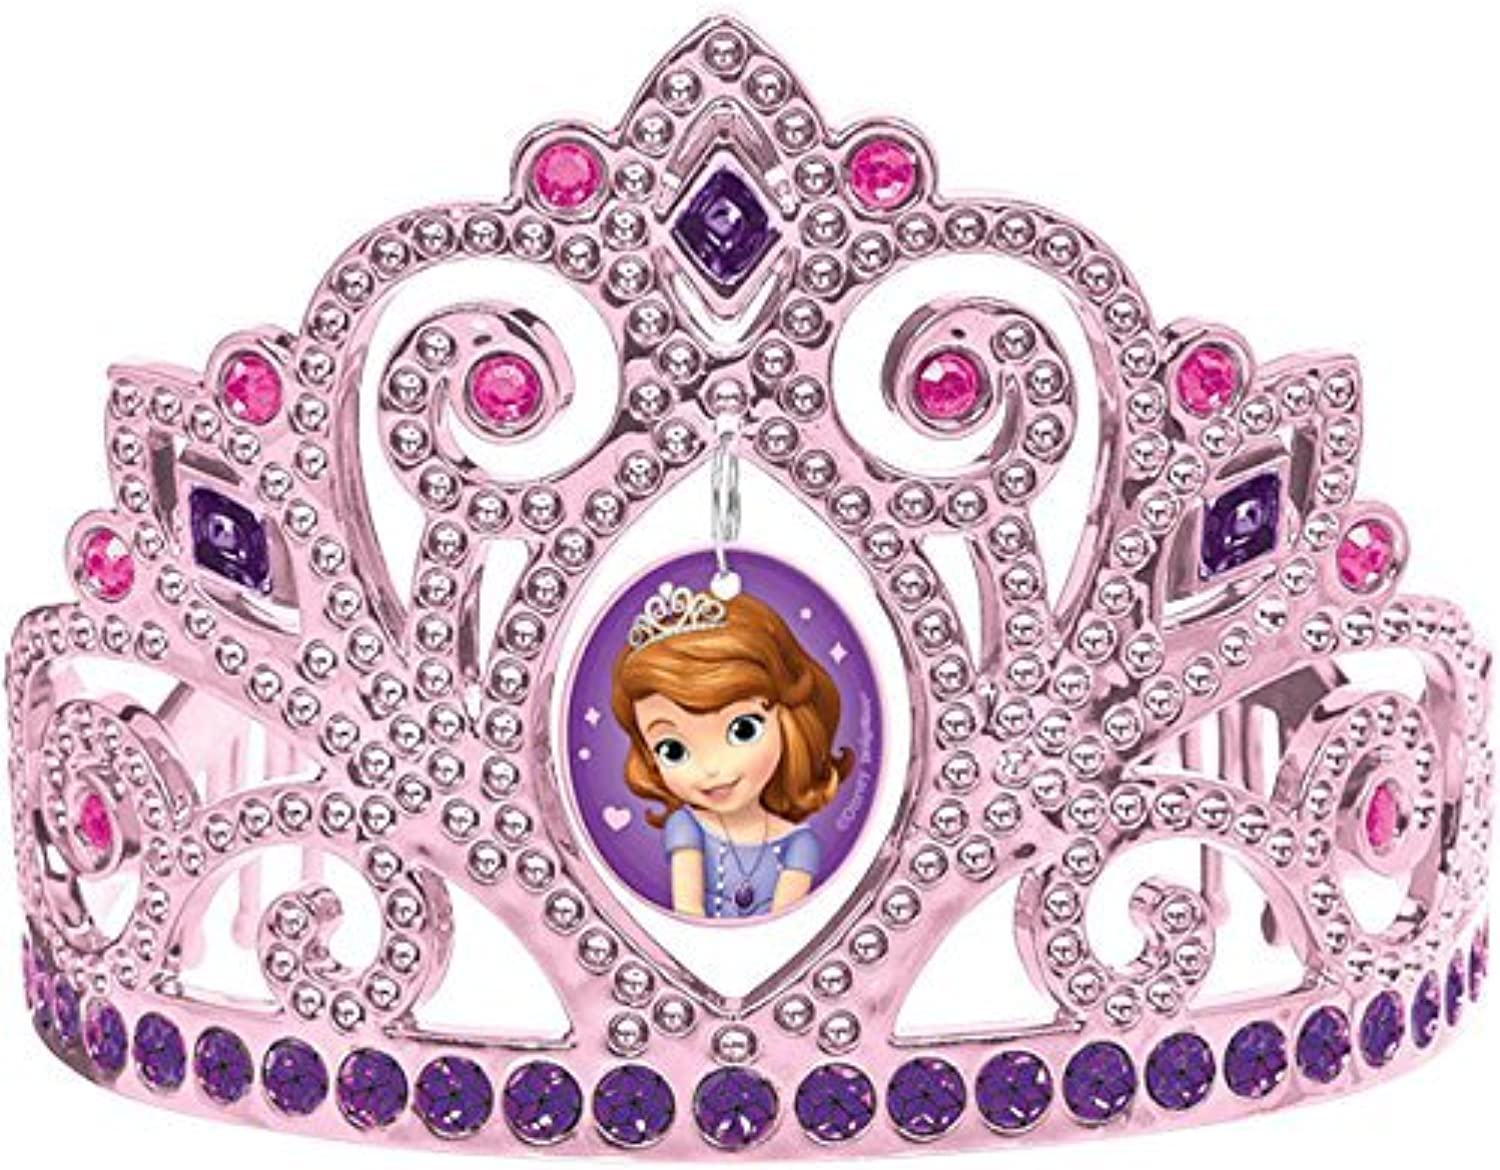 Sofia the First Electroplated Princess Birthday Party Tiara Wearable Favour (3-PACK)